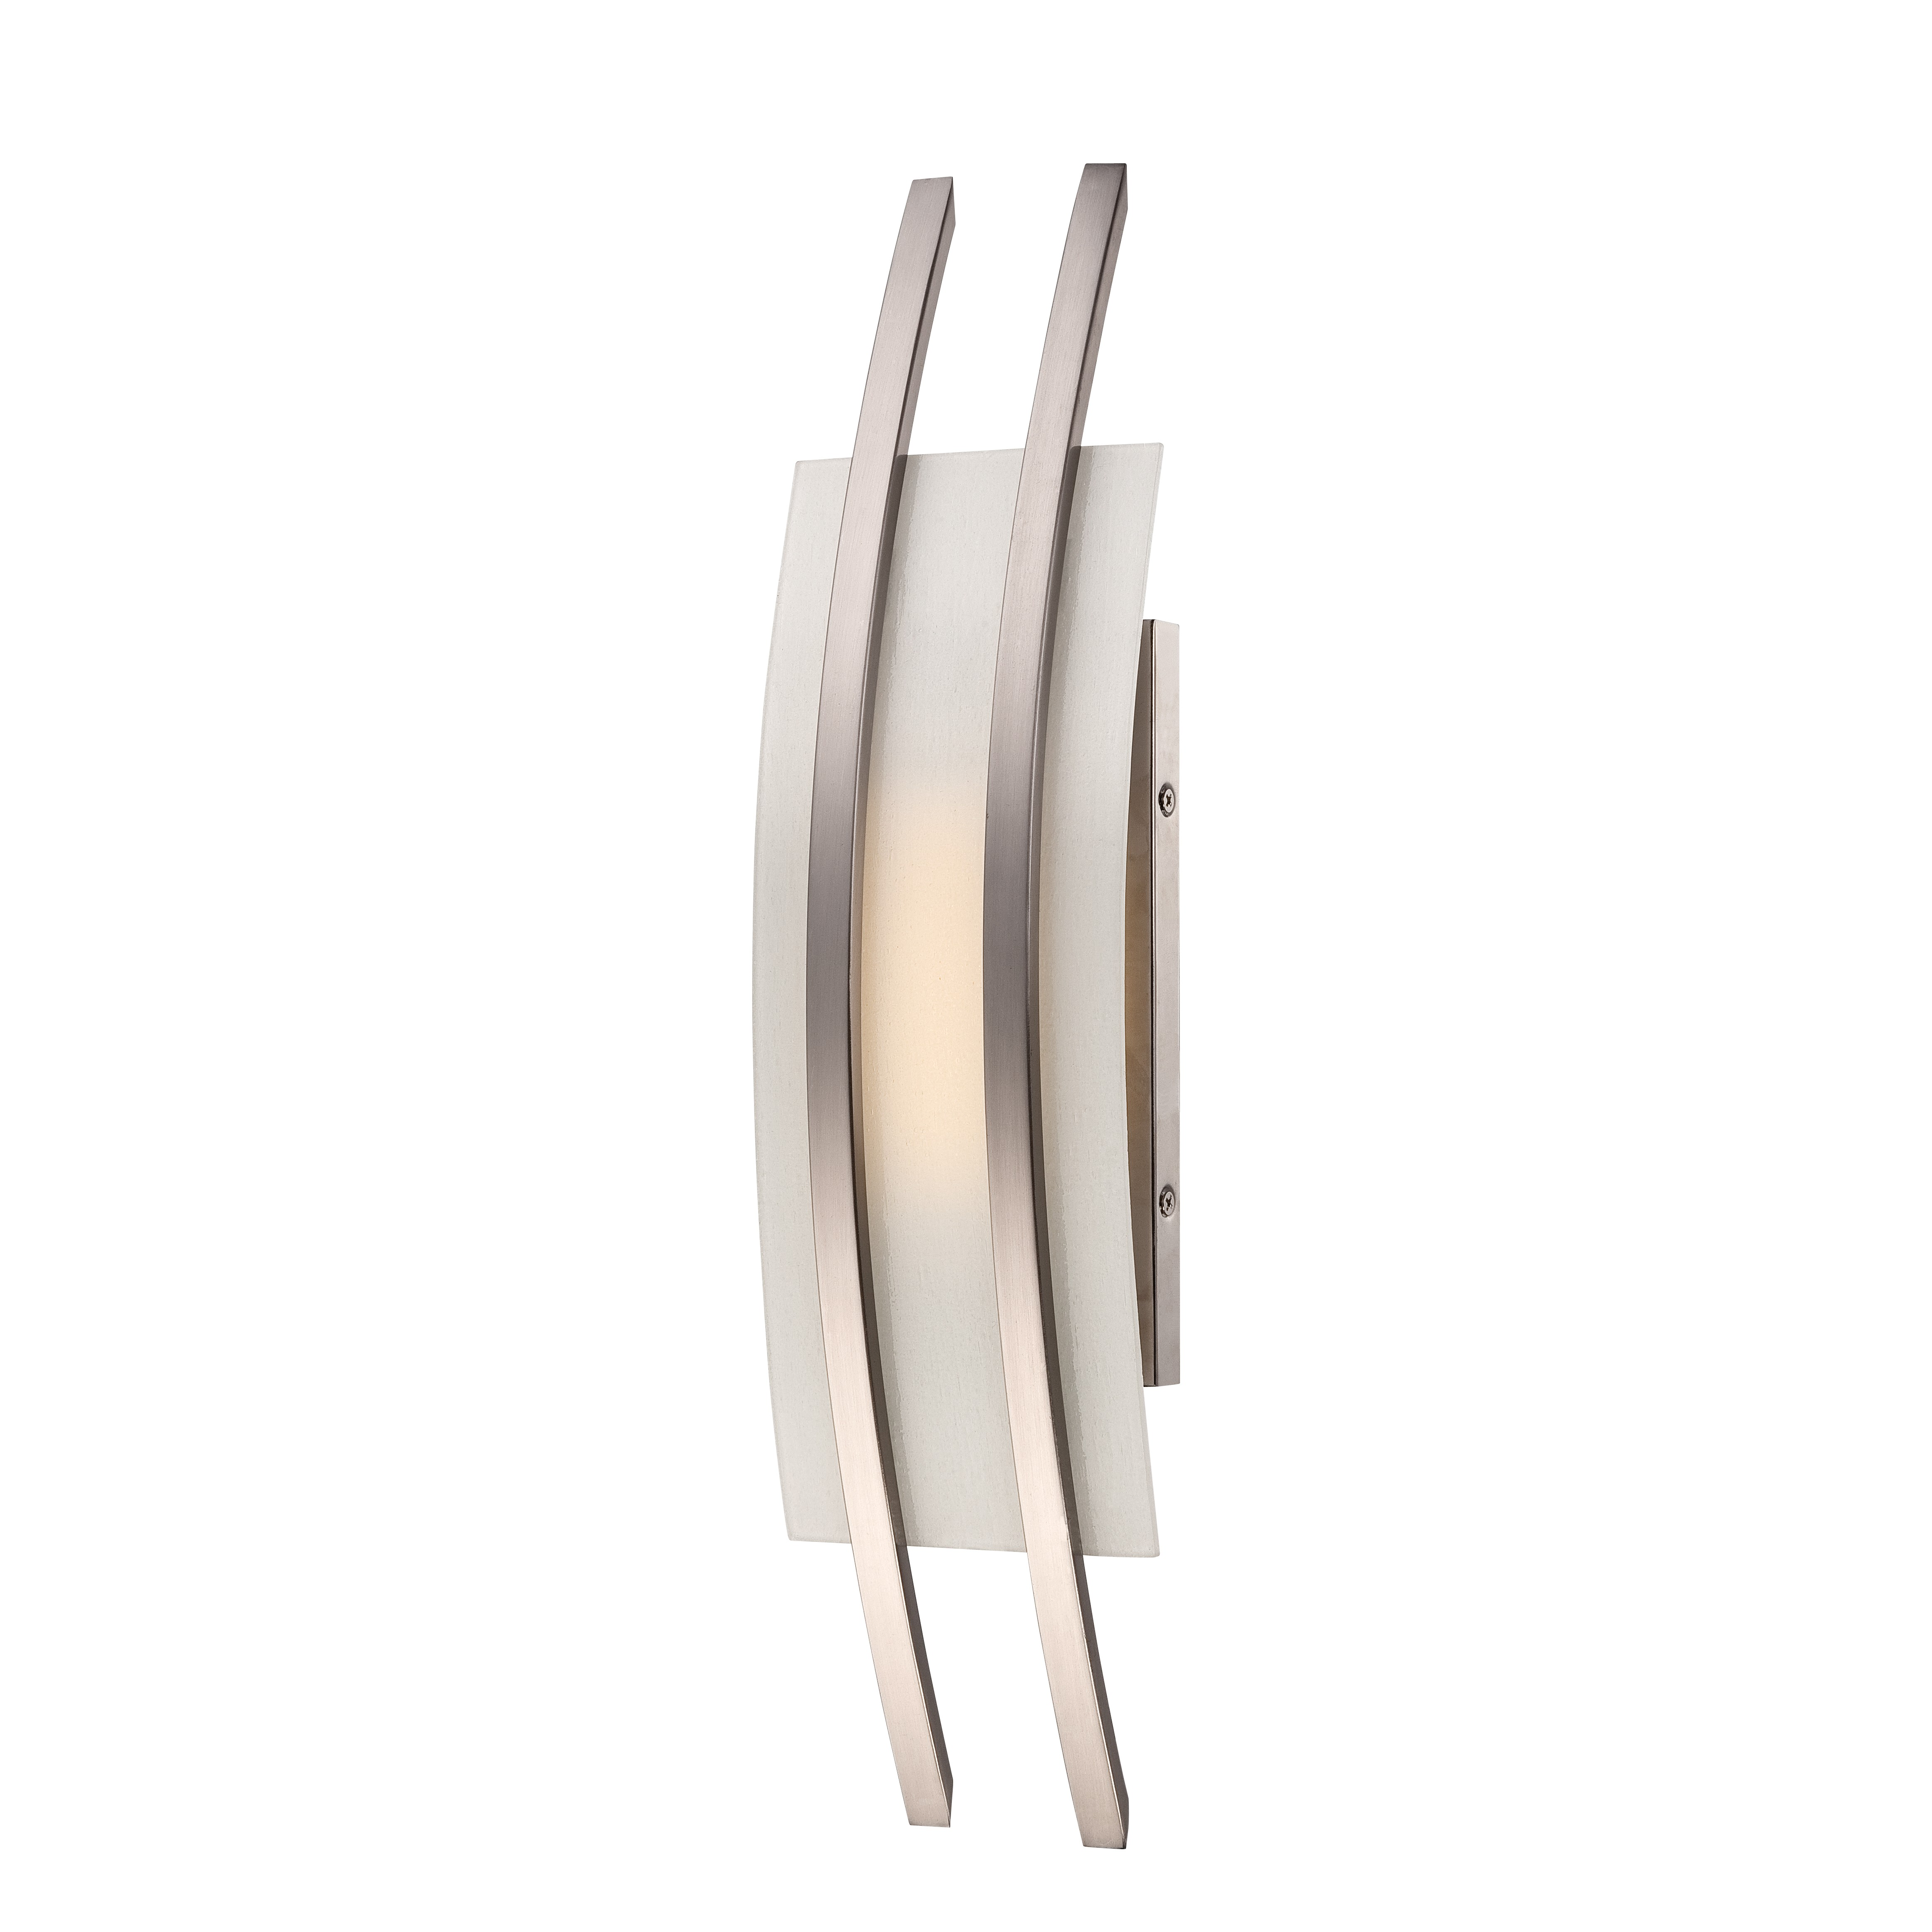 Awesome 1 Light Wall Mounted LED Wall Sconce By Nuvo Lighting For Home Lighting Ideas